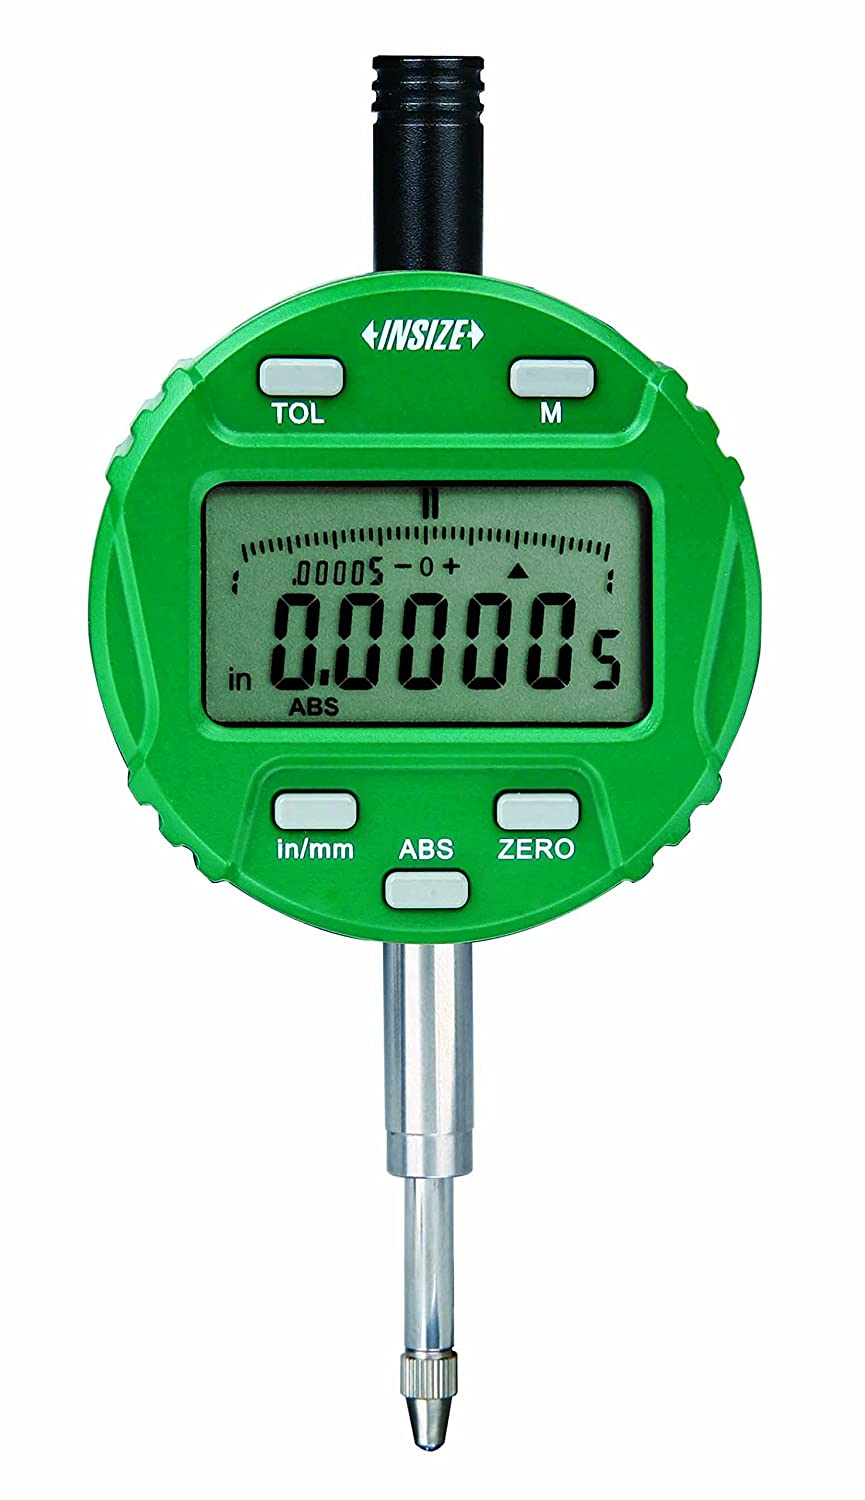 INSIZE 2103-50E Super beauty product restock quality top! Electronic quality assurance Indicator 2